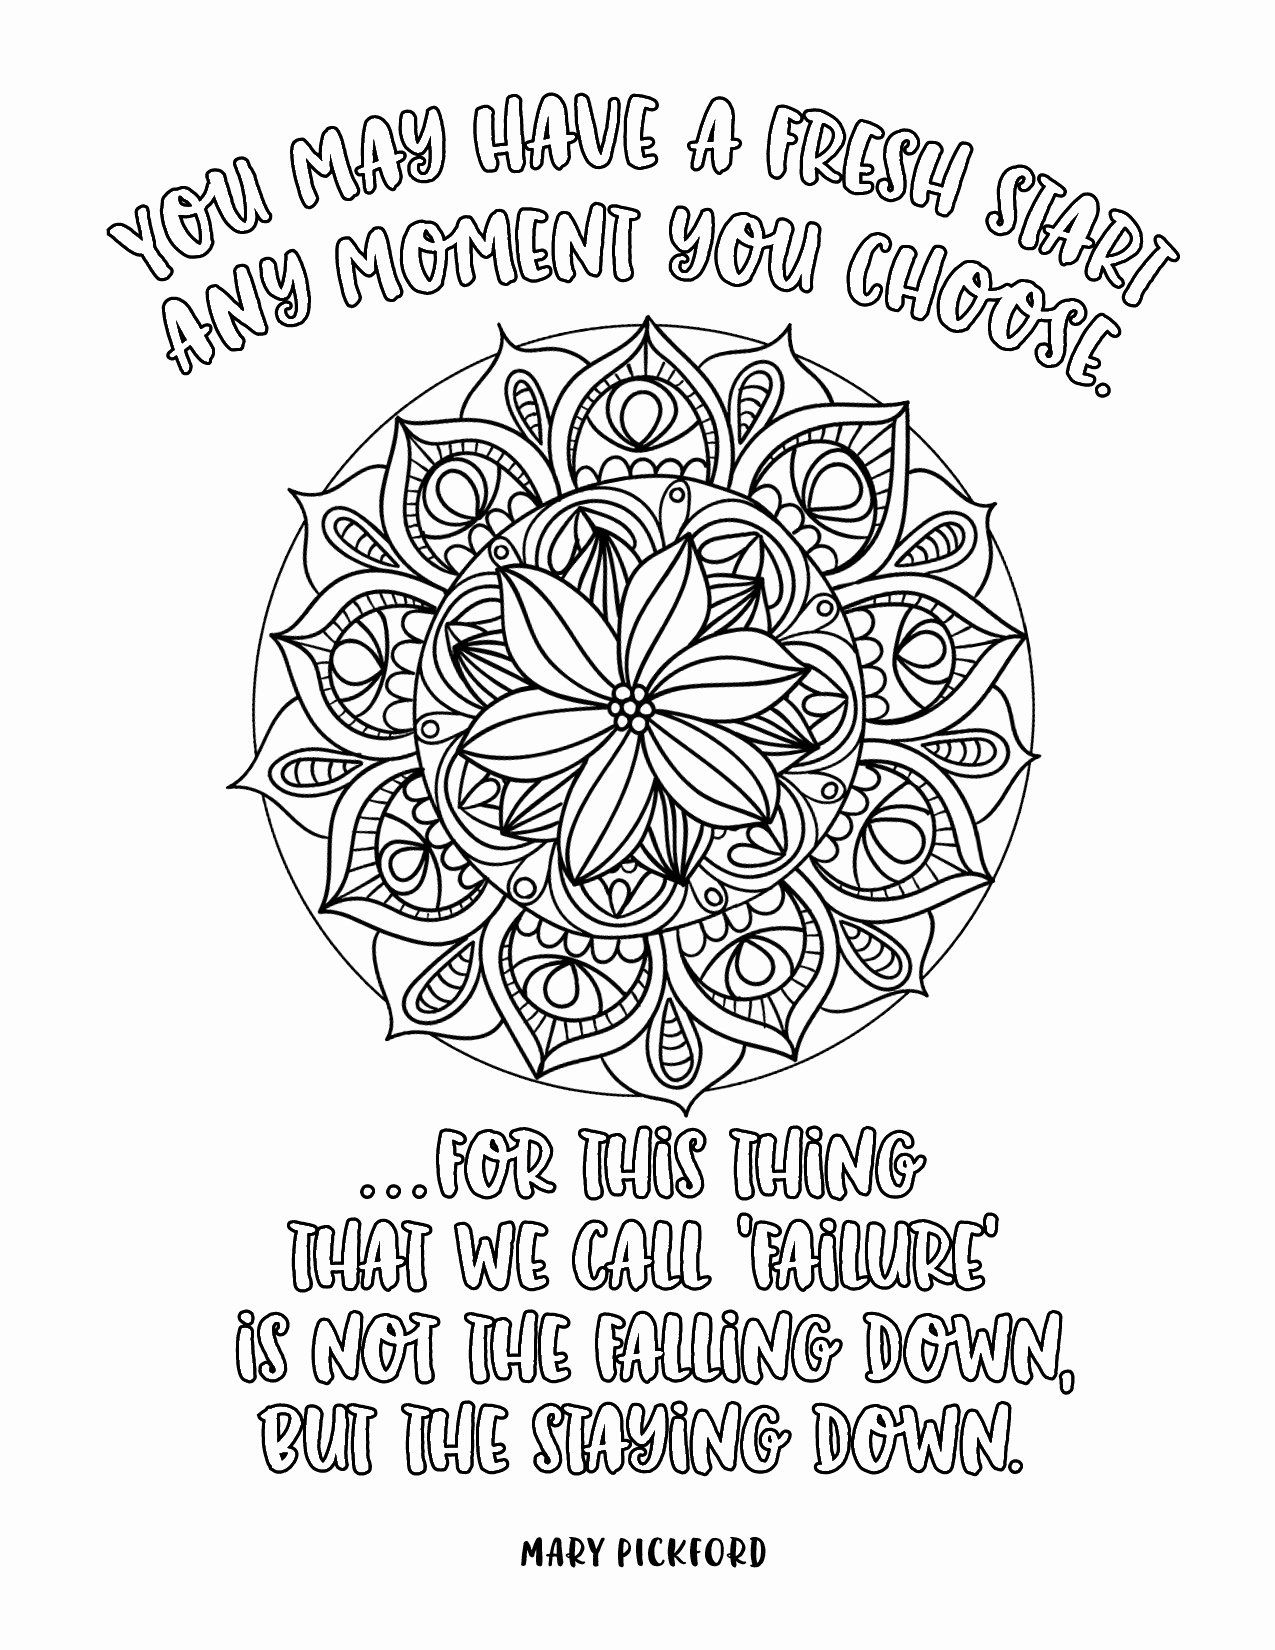 Disney Quote Coloring Pages New Mandala Coloring Pages Disney Quotes Coloring Pages Quote Coloring Pages Coloring Pages For Grown Ups Mandala Coloring Pages